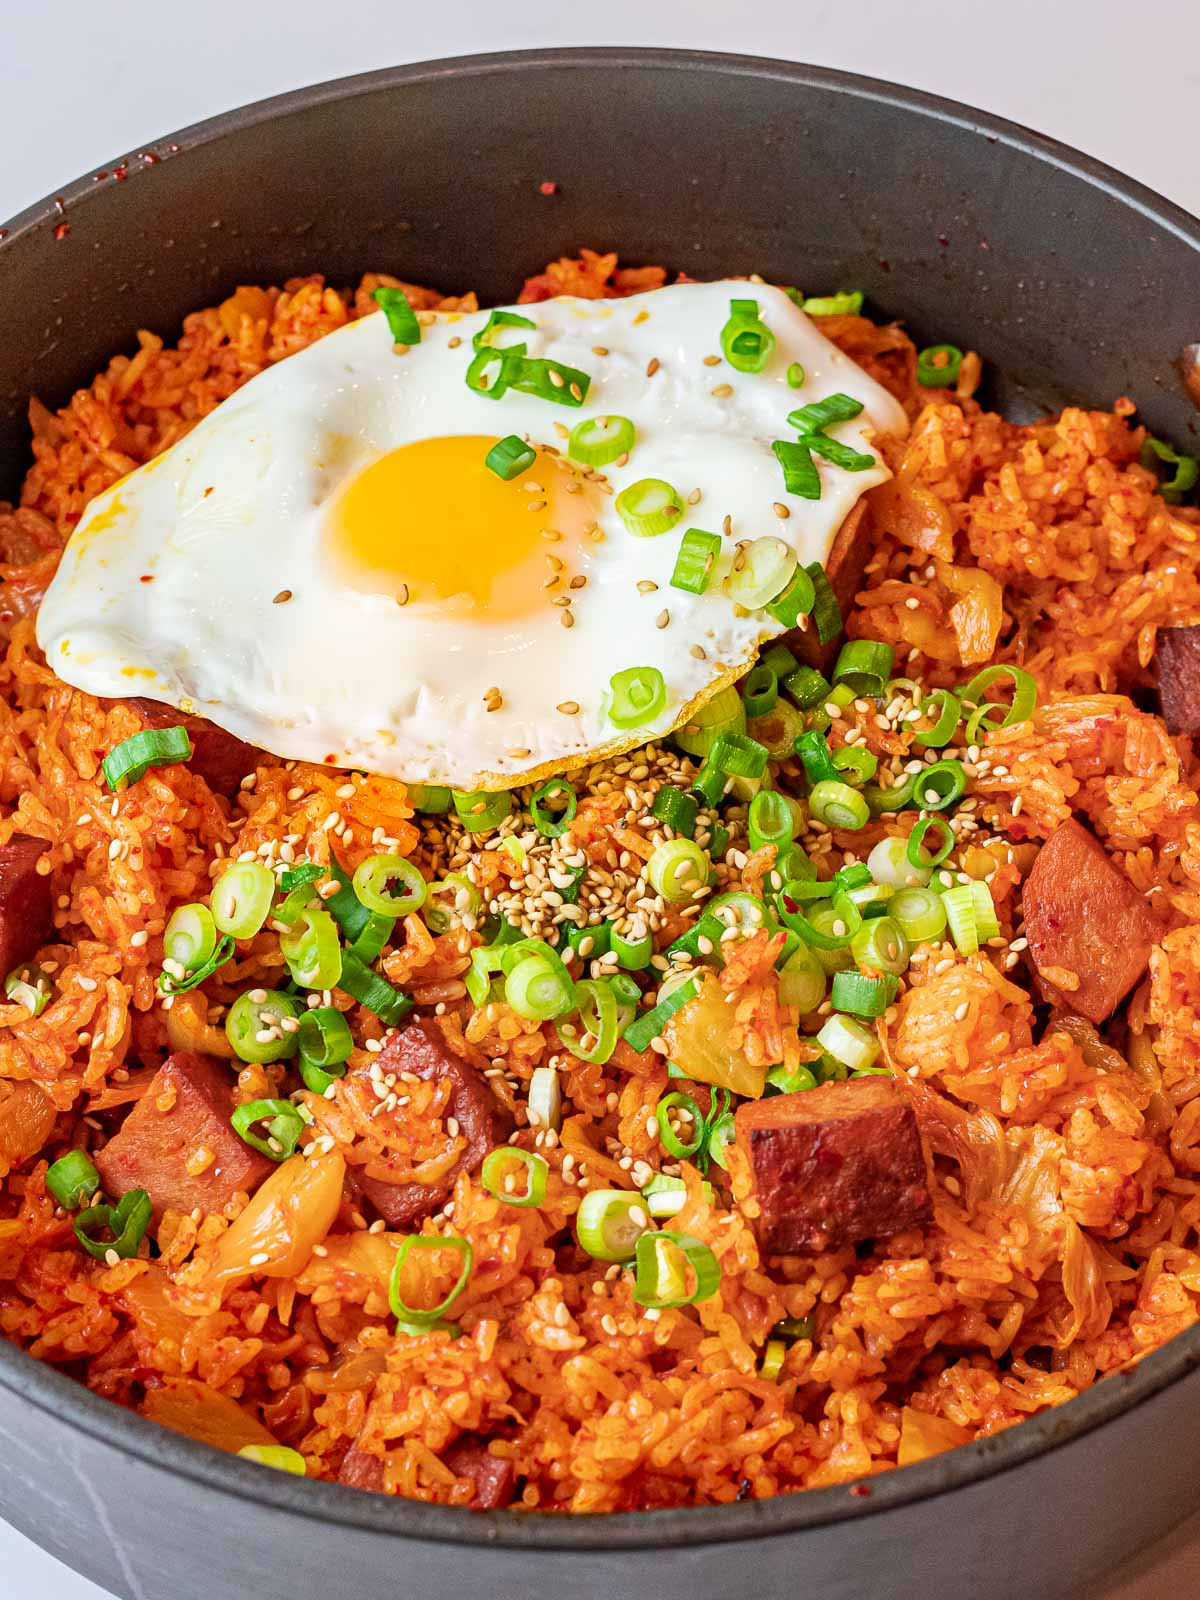 kimchi fried rice with spam and a fried sunny side up egg with scallions in a pan